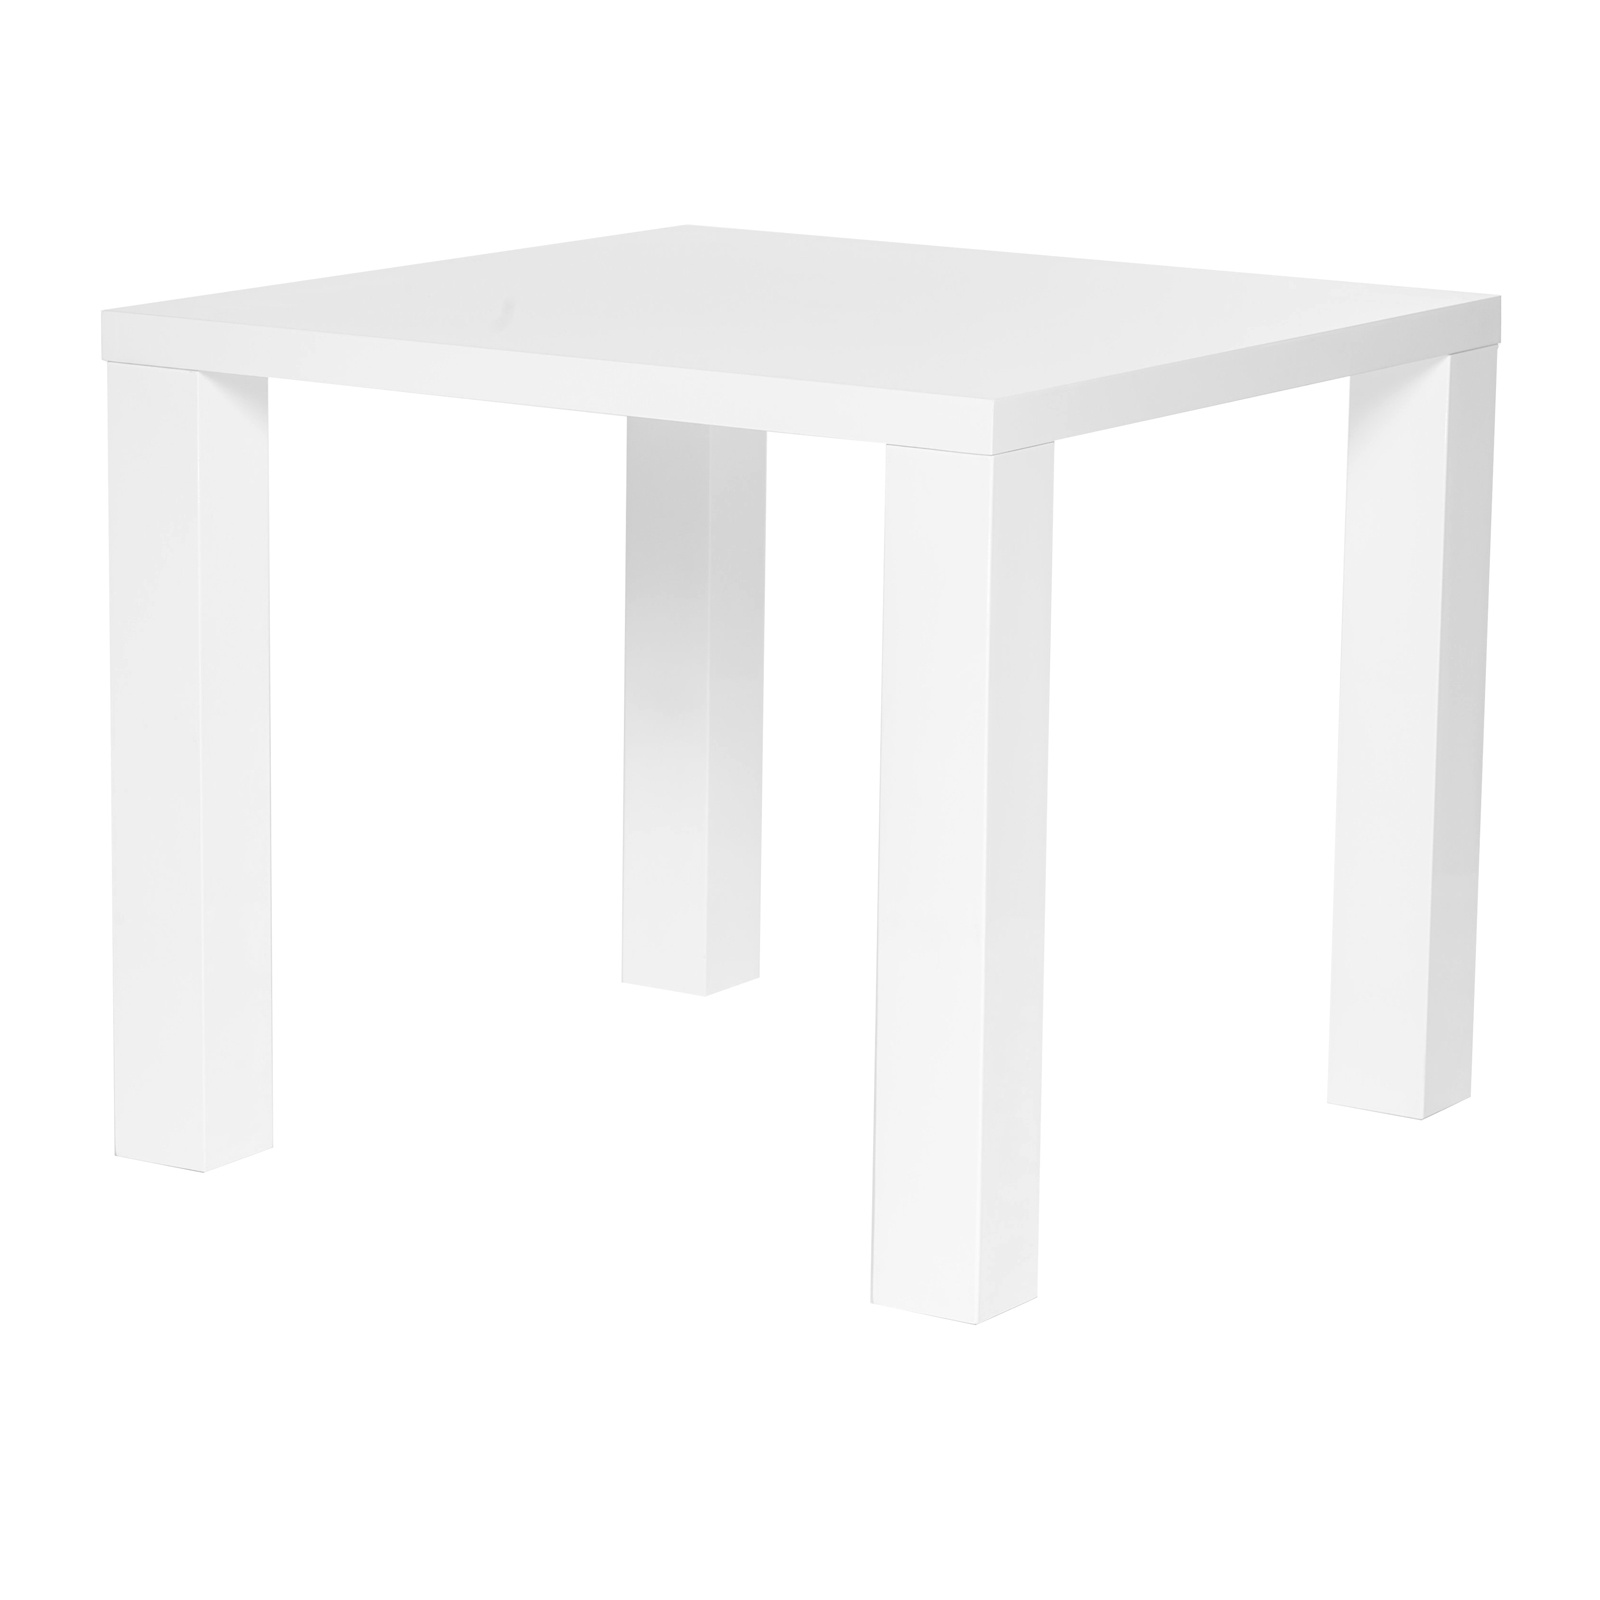 Parsons Dining Table Square Event Trade Show Furniture